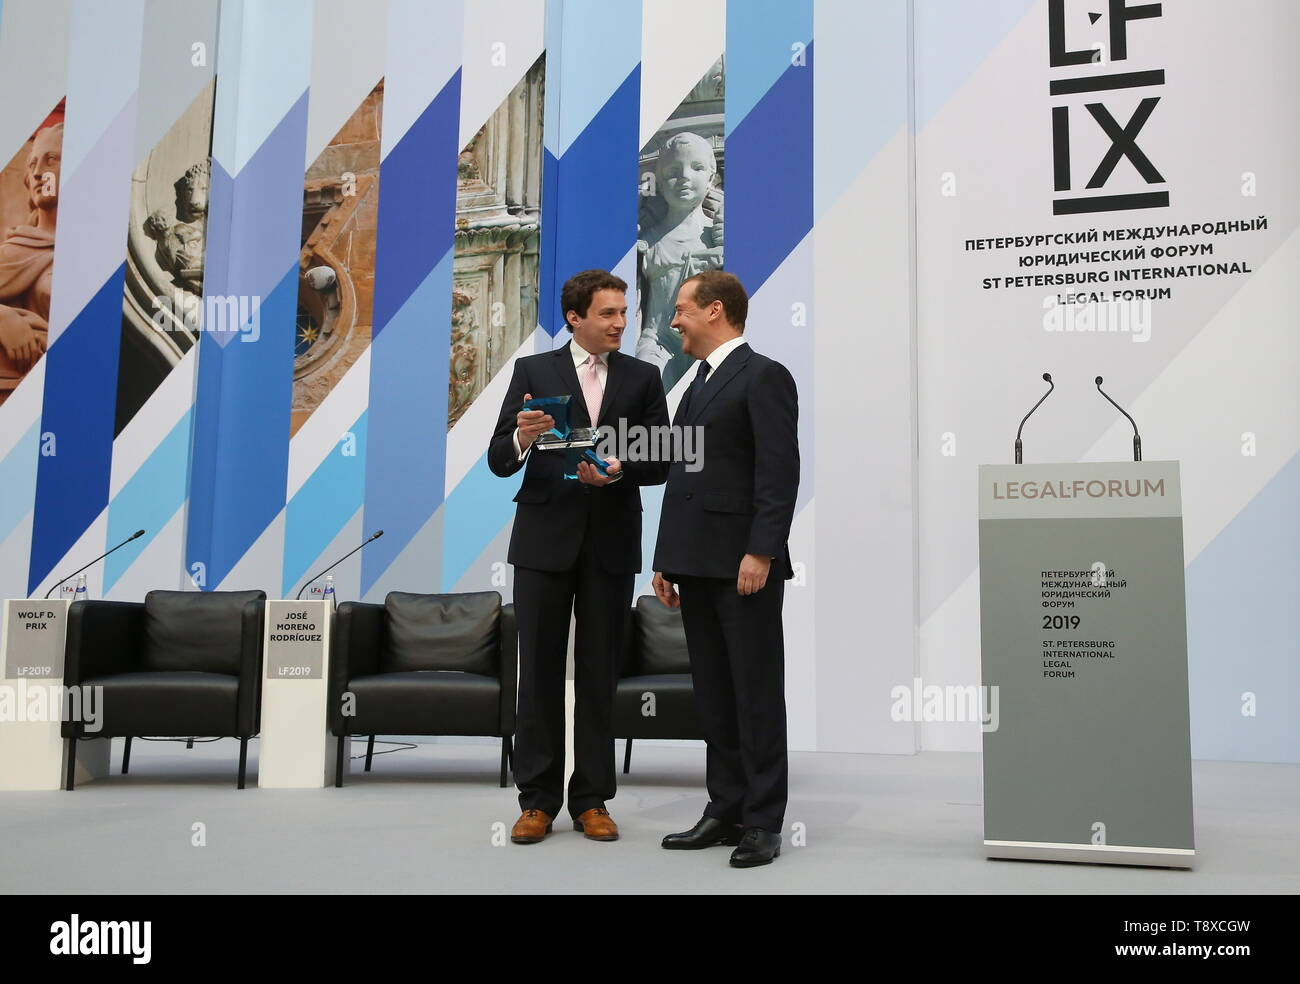 St Petersburg, Russia. 15th May, 2019. ST PETERSBURG, RUSSIA - MAY 15, 2018: Russia's Prime Minister Dmitry Medvedev (R) awards Oxford University Professor Jeremias Prassl for his research Humans as a Service with the SPBILF Private Law Prize at a ceremony as part of the 2019 St Petersburg International Legal Forum. Yekaterina Shtukina/Russian Government Press Office/TASS Credit: ITAR-TASS News Agency/Alamy Live News - Stock Image